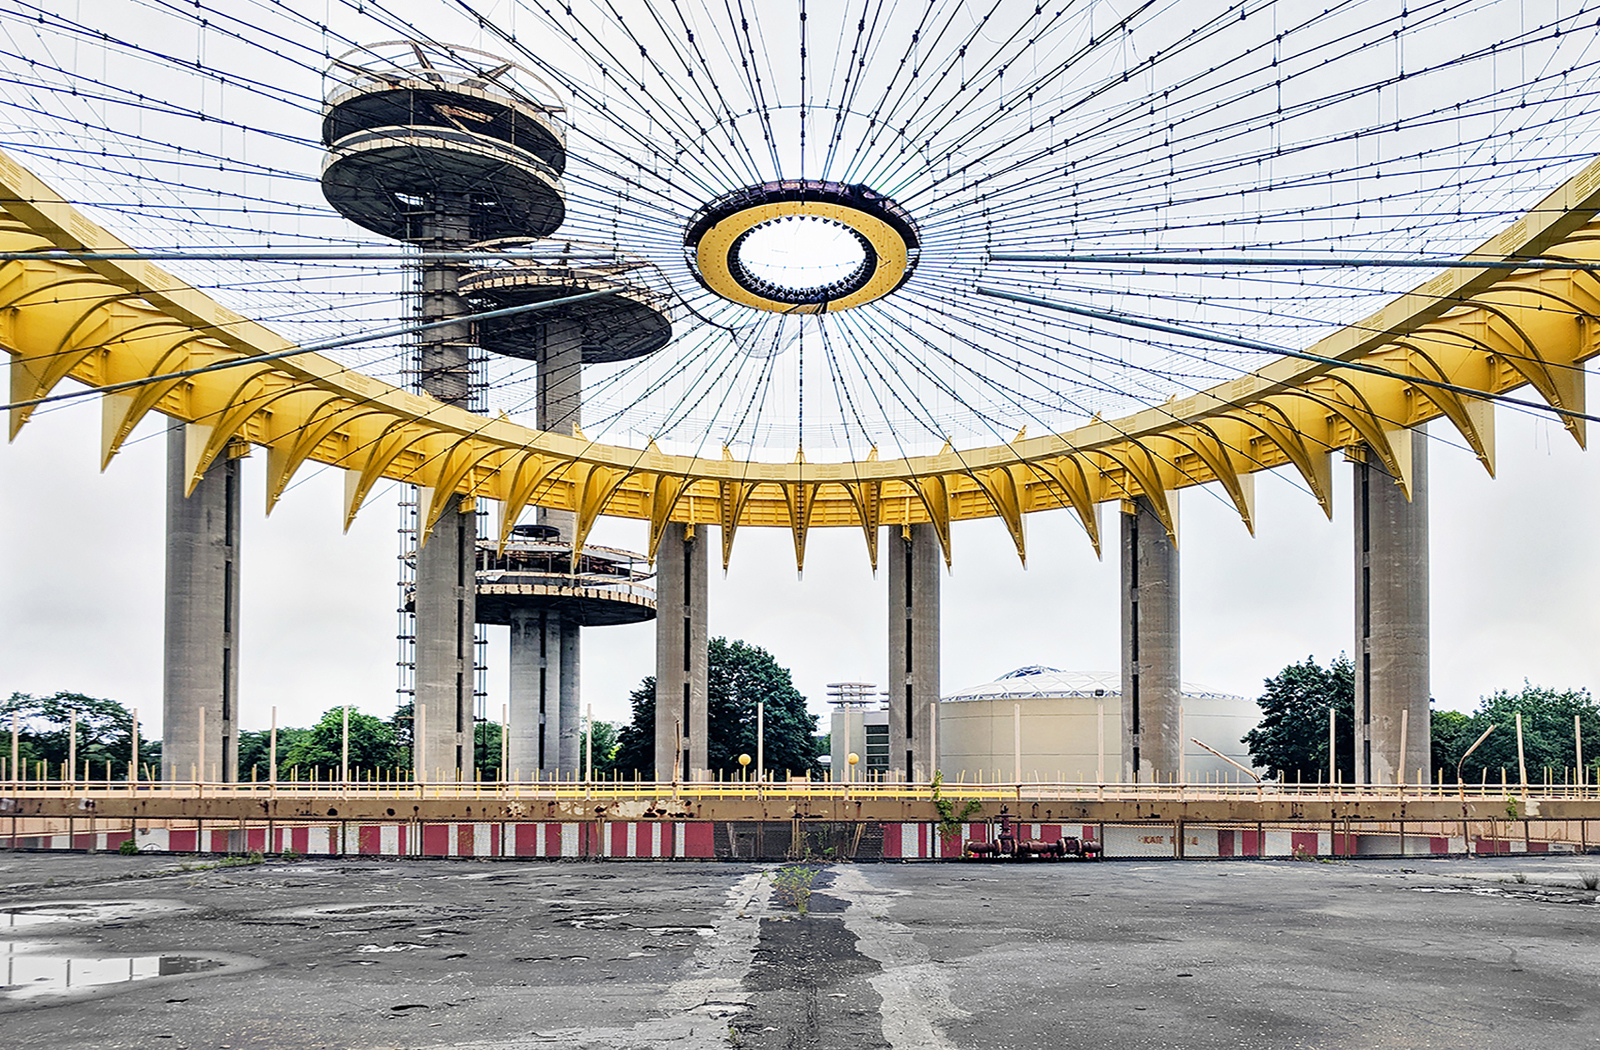 The New York State Pavilion (Queens, NY)